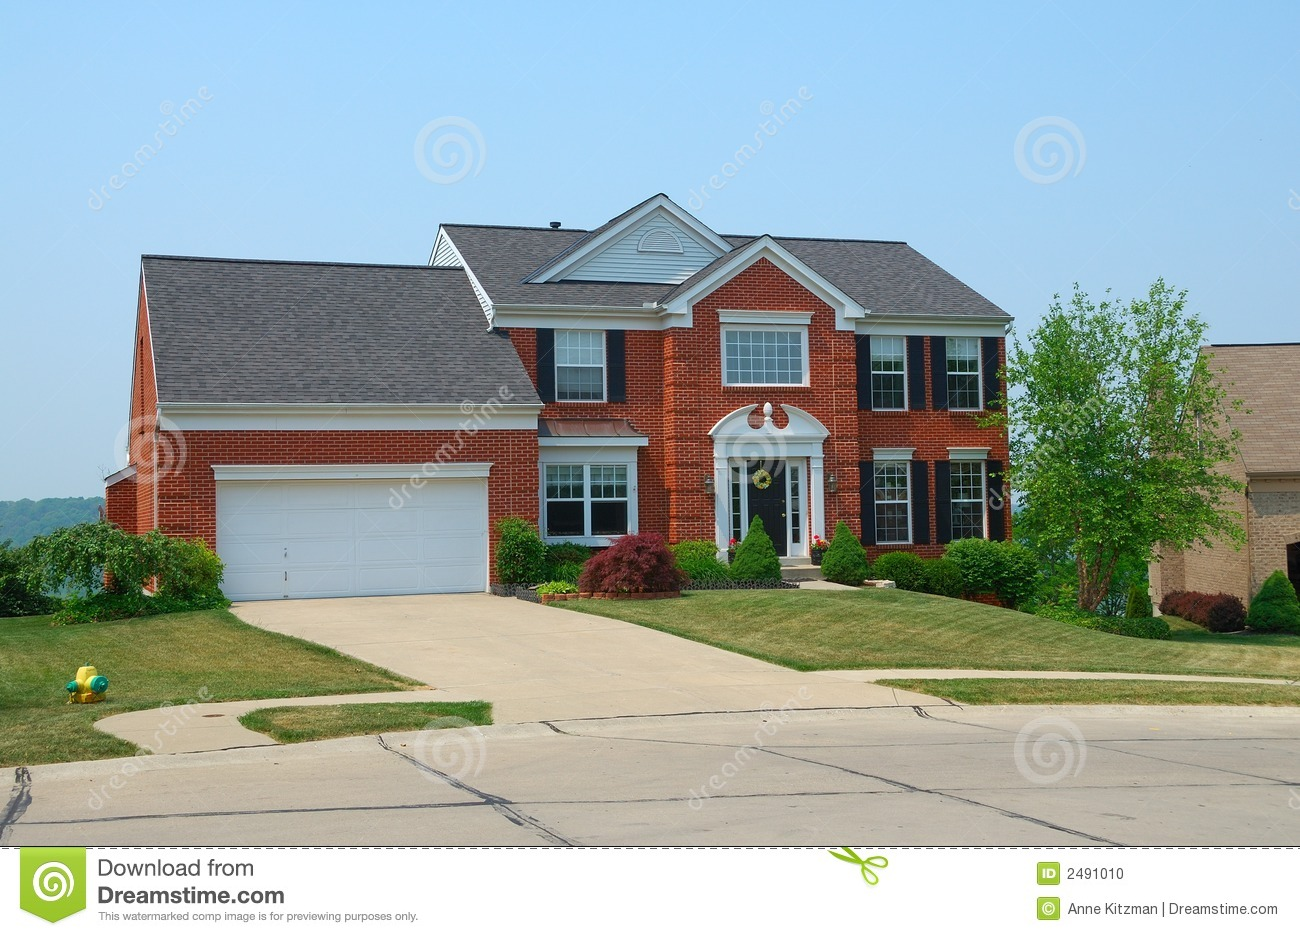 Residential 2 Story Brick Home Stock Photo Image 2491010